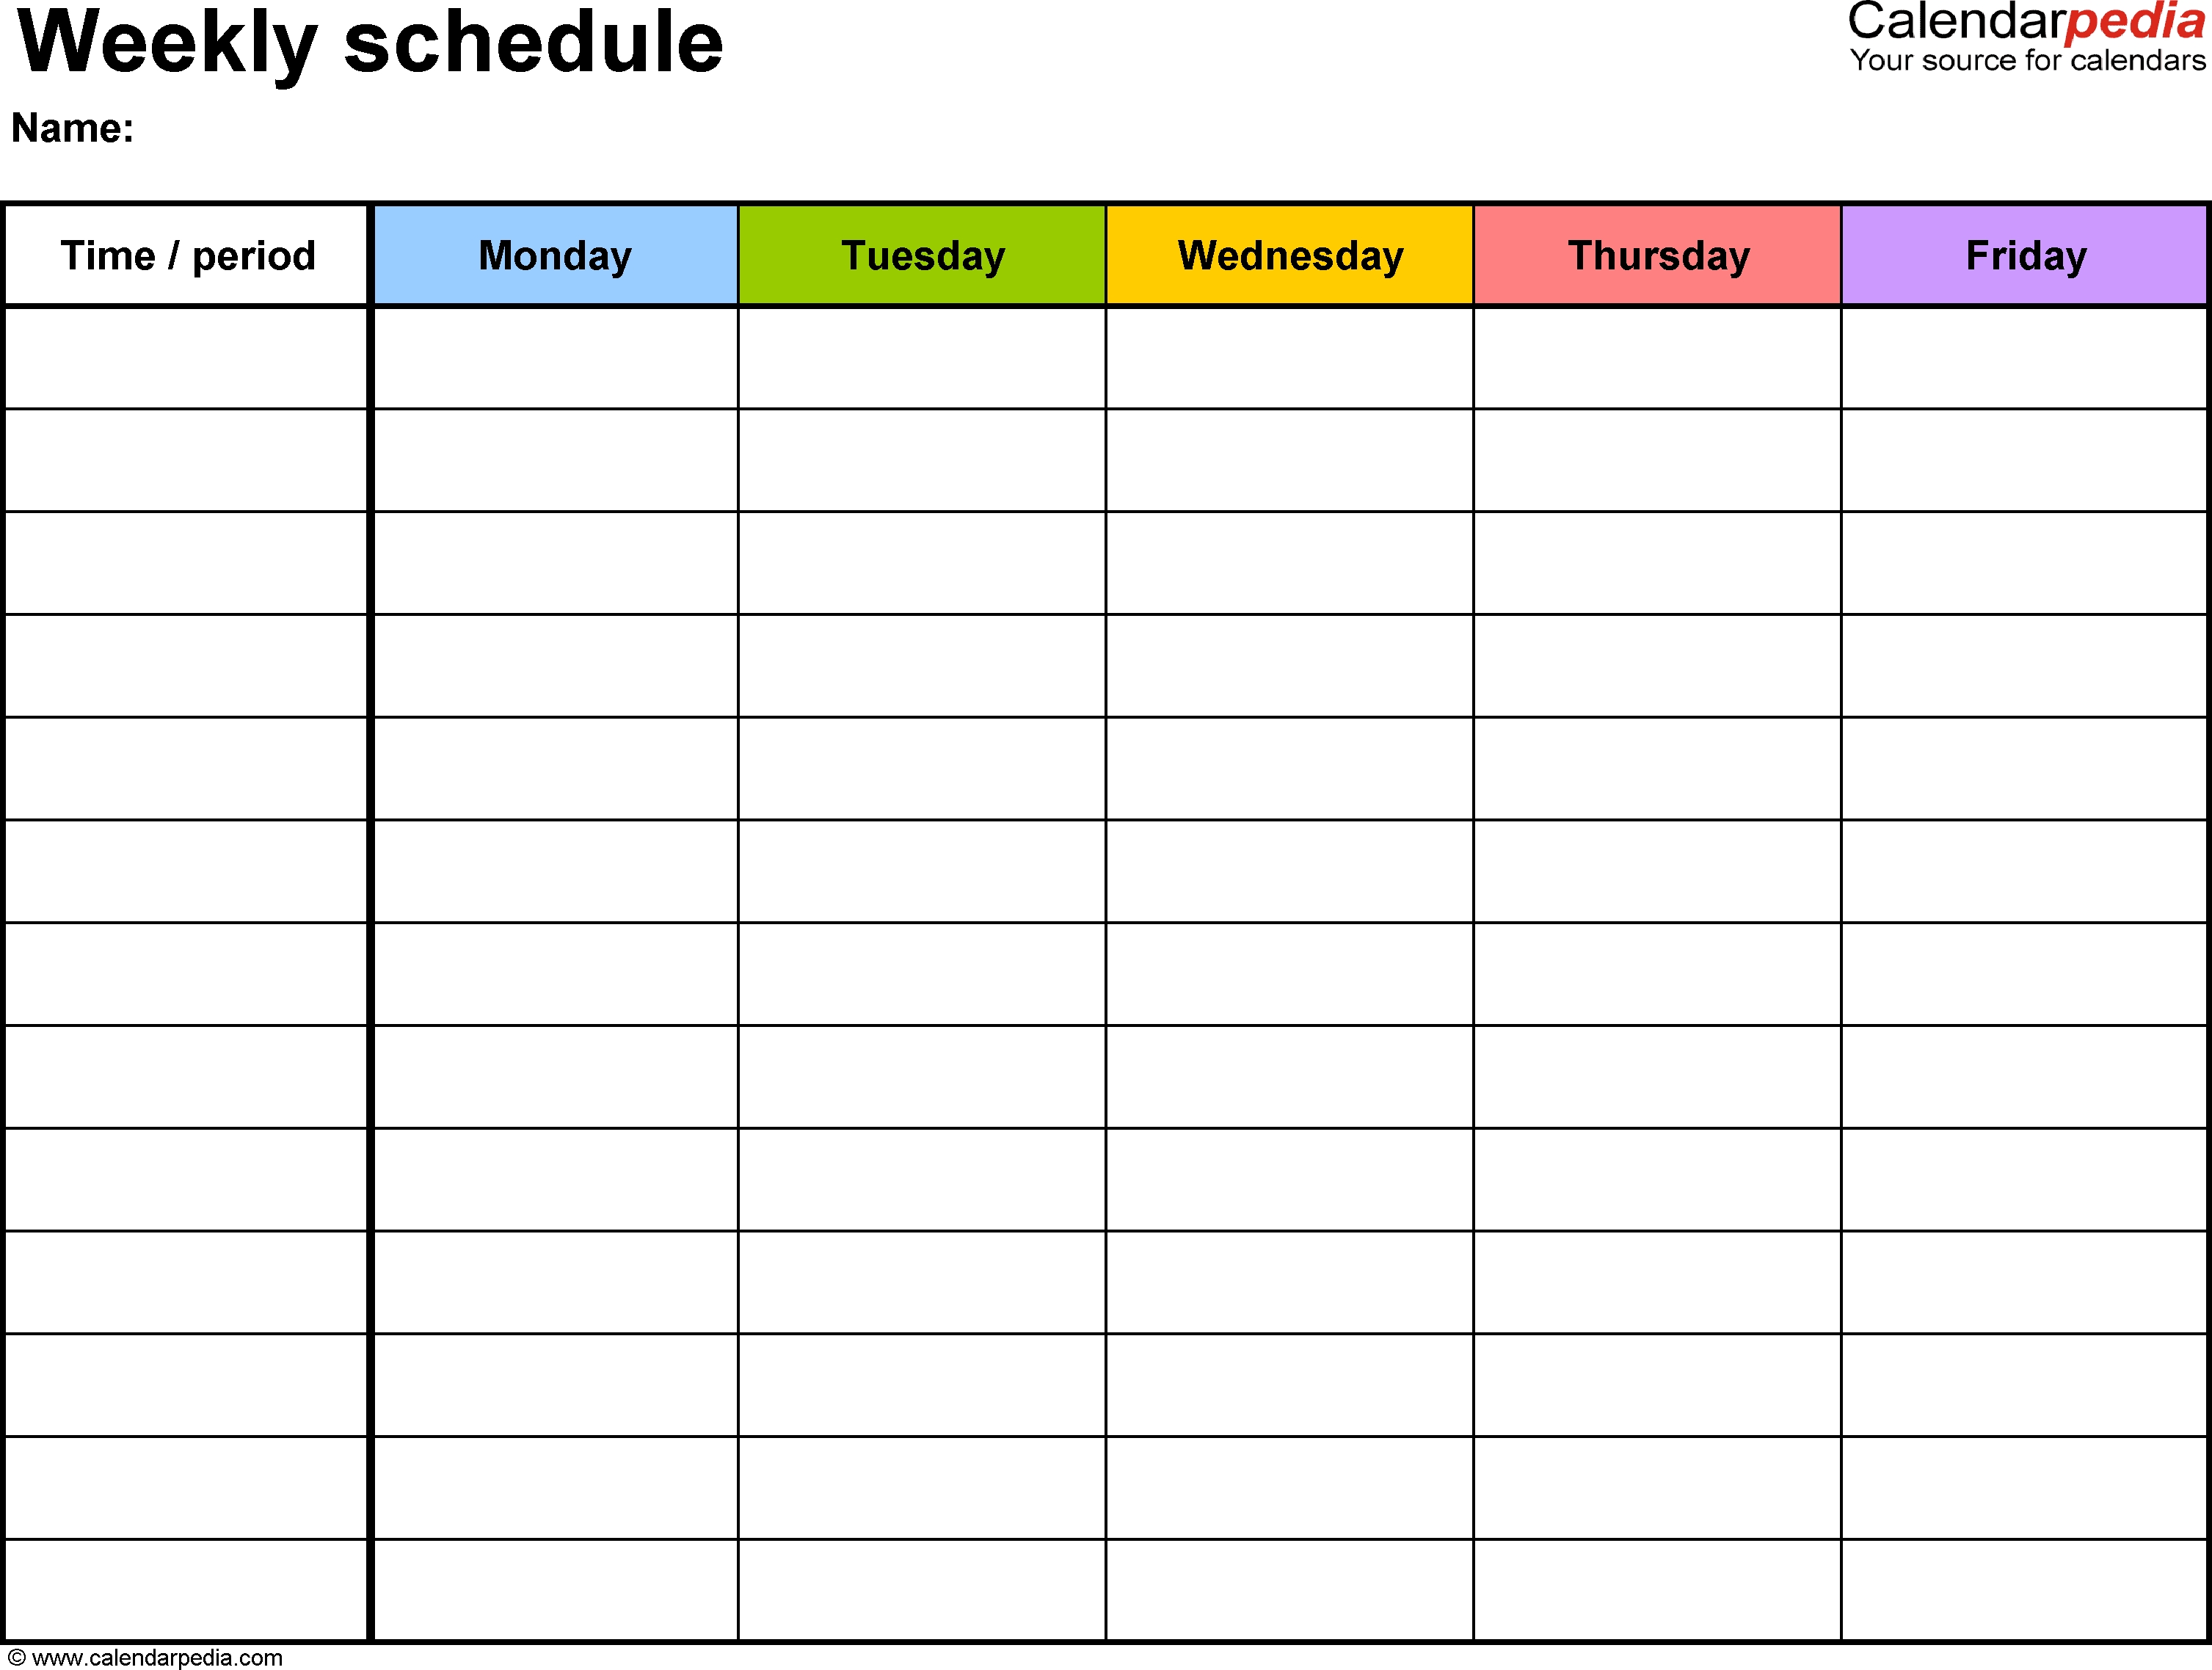 Free Weekly Schedule Templates For Word - 18 Templates inside Blank Weekly Monday Through Friday Calendar Template